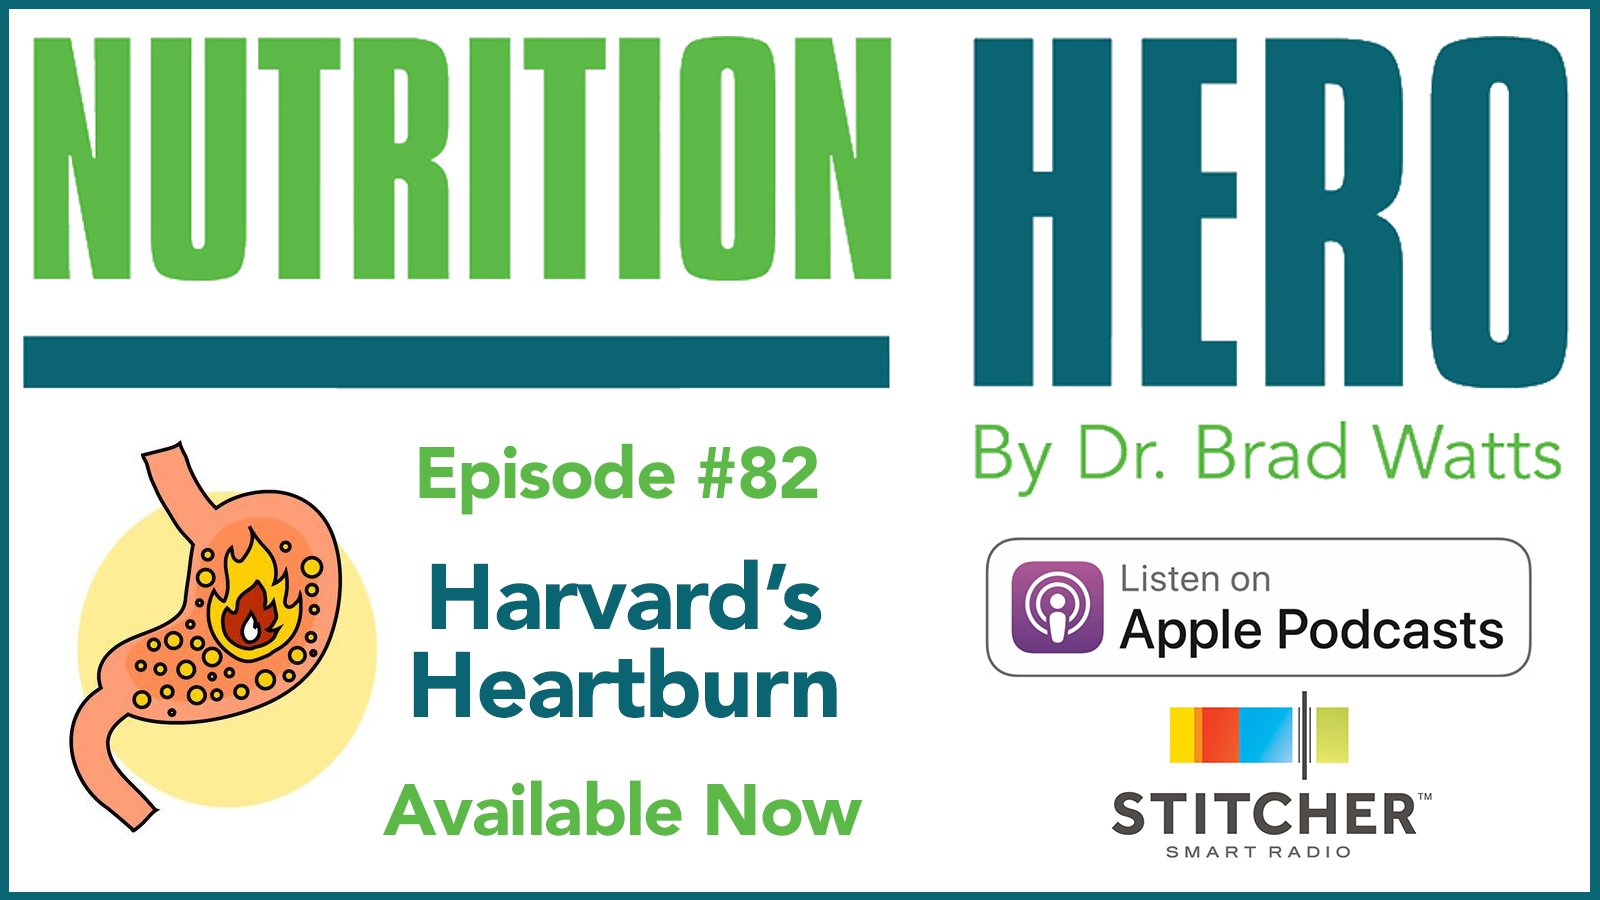 Episode #82 - Harvard's Heartburn show art